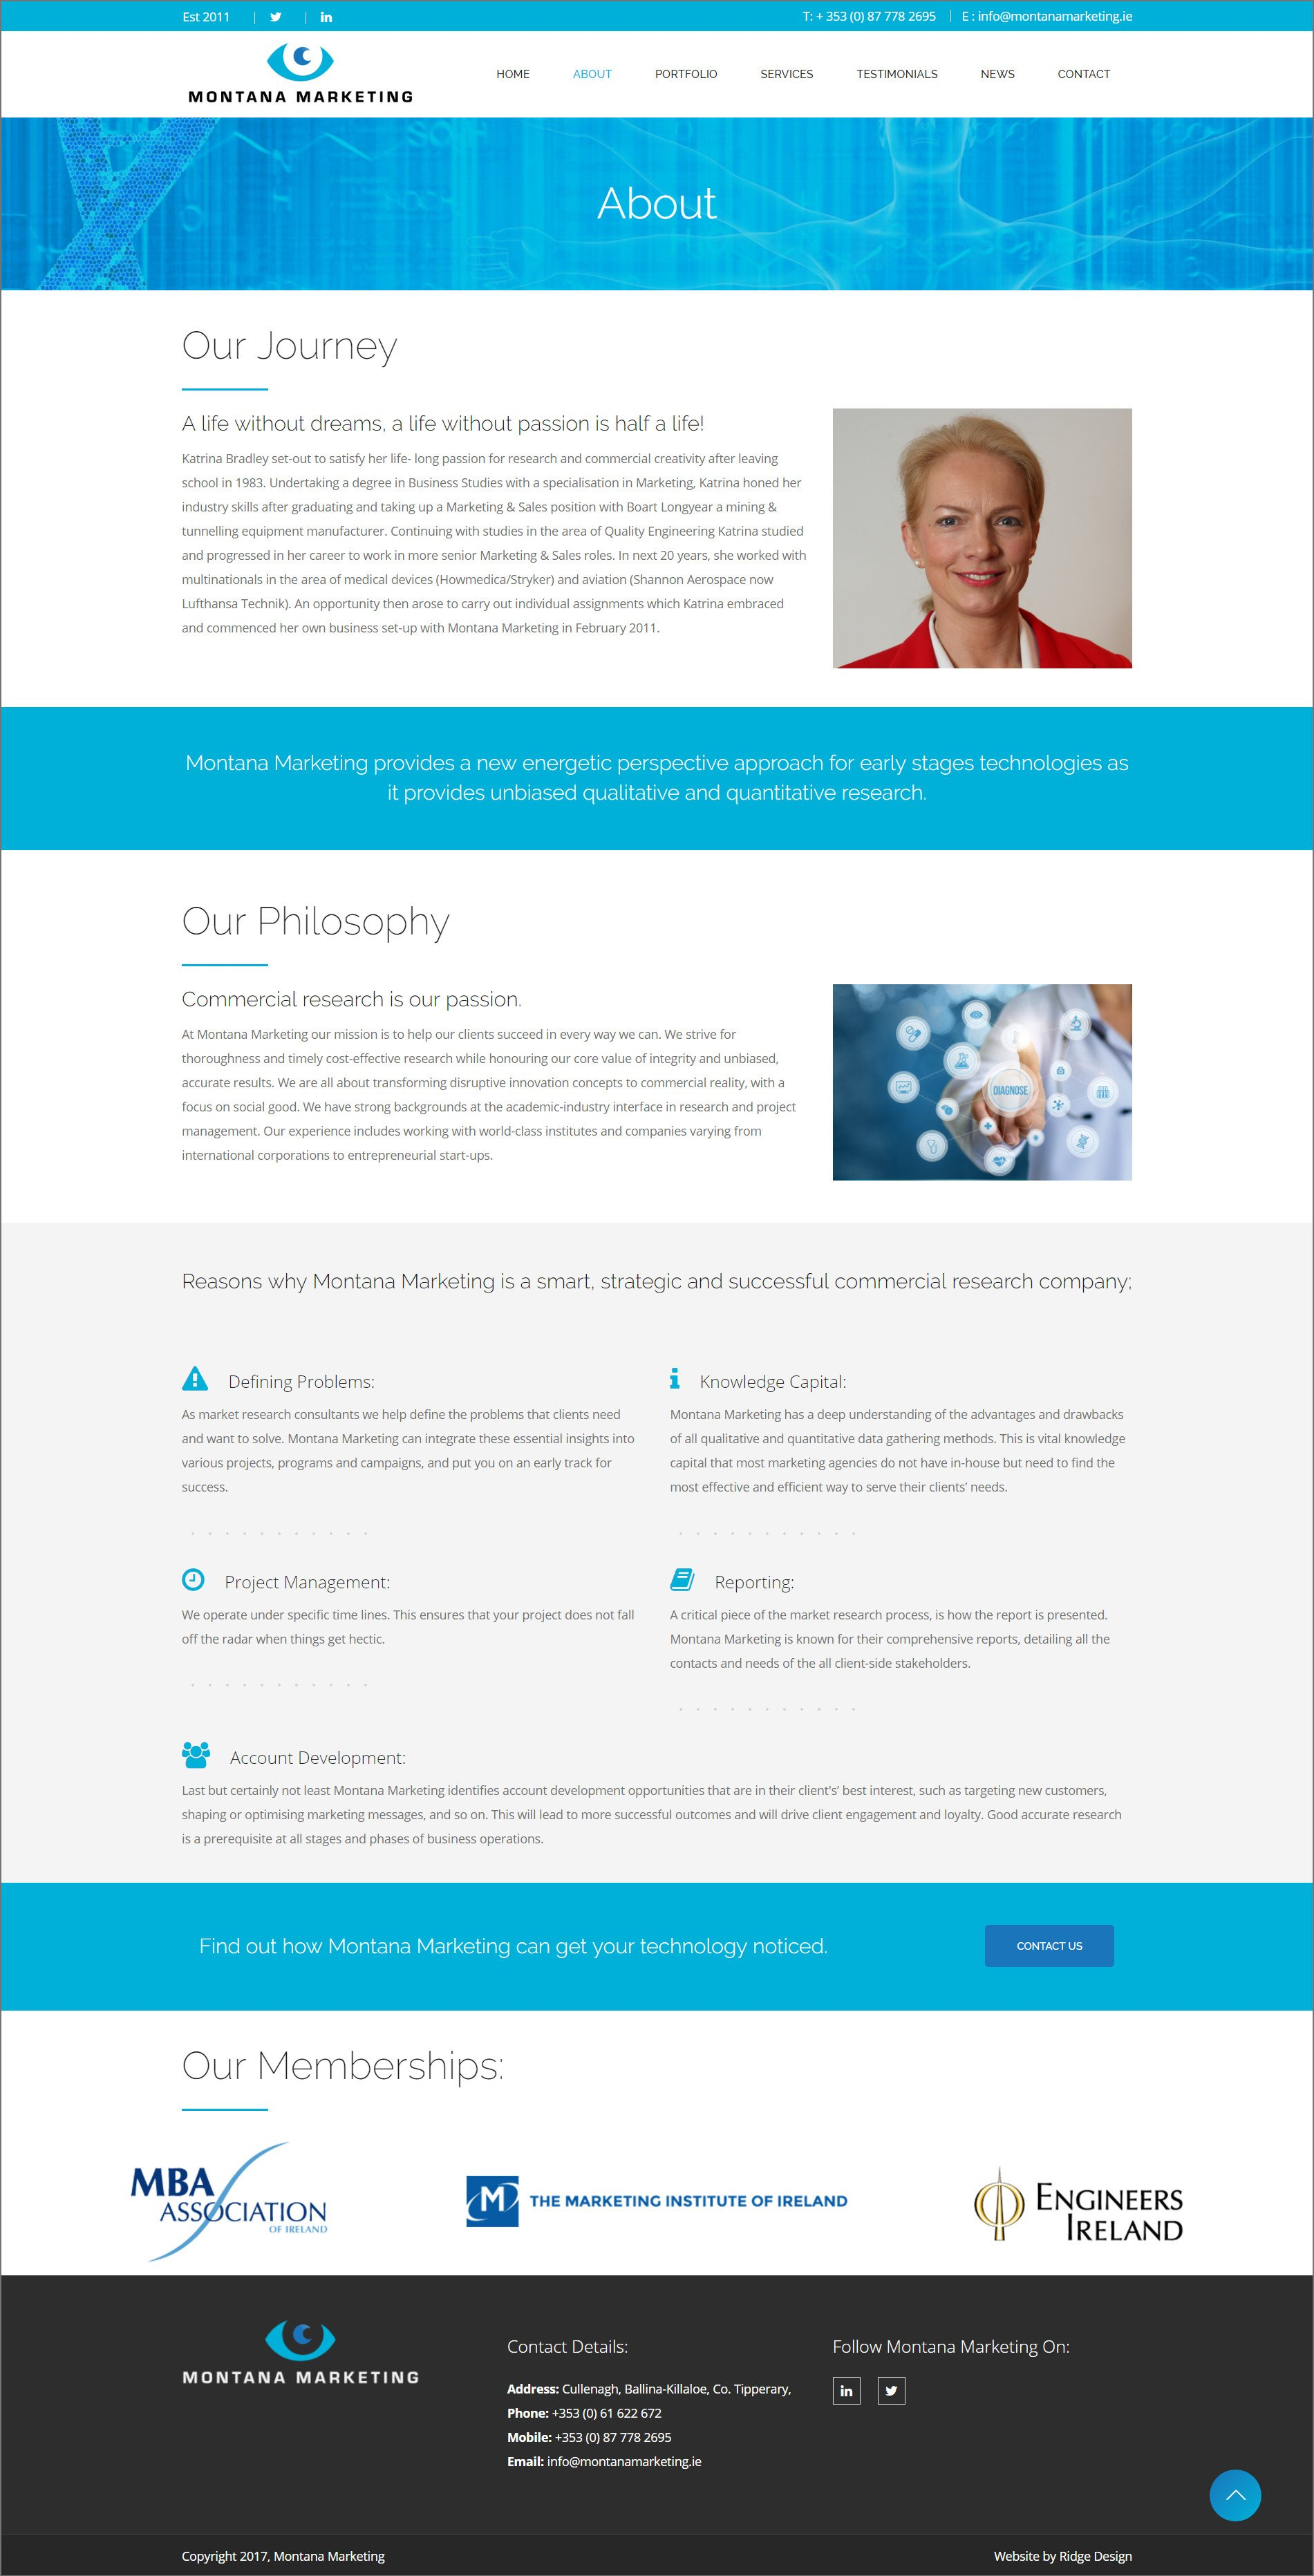 MOntana-Marketing-Website-Design-About-Page